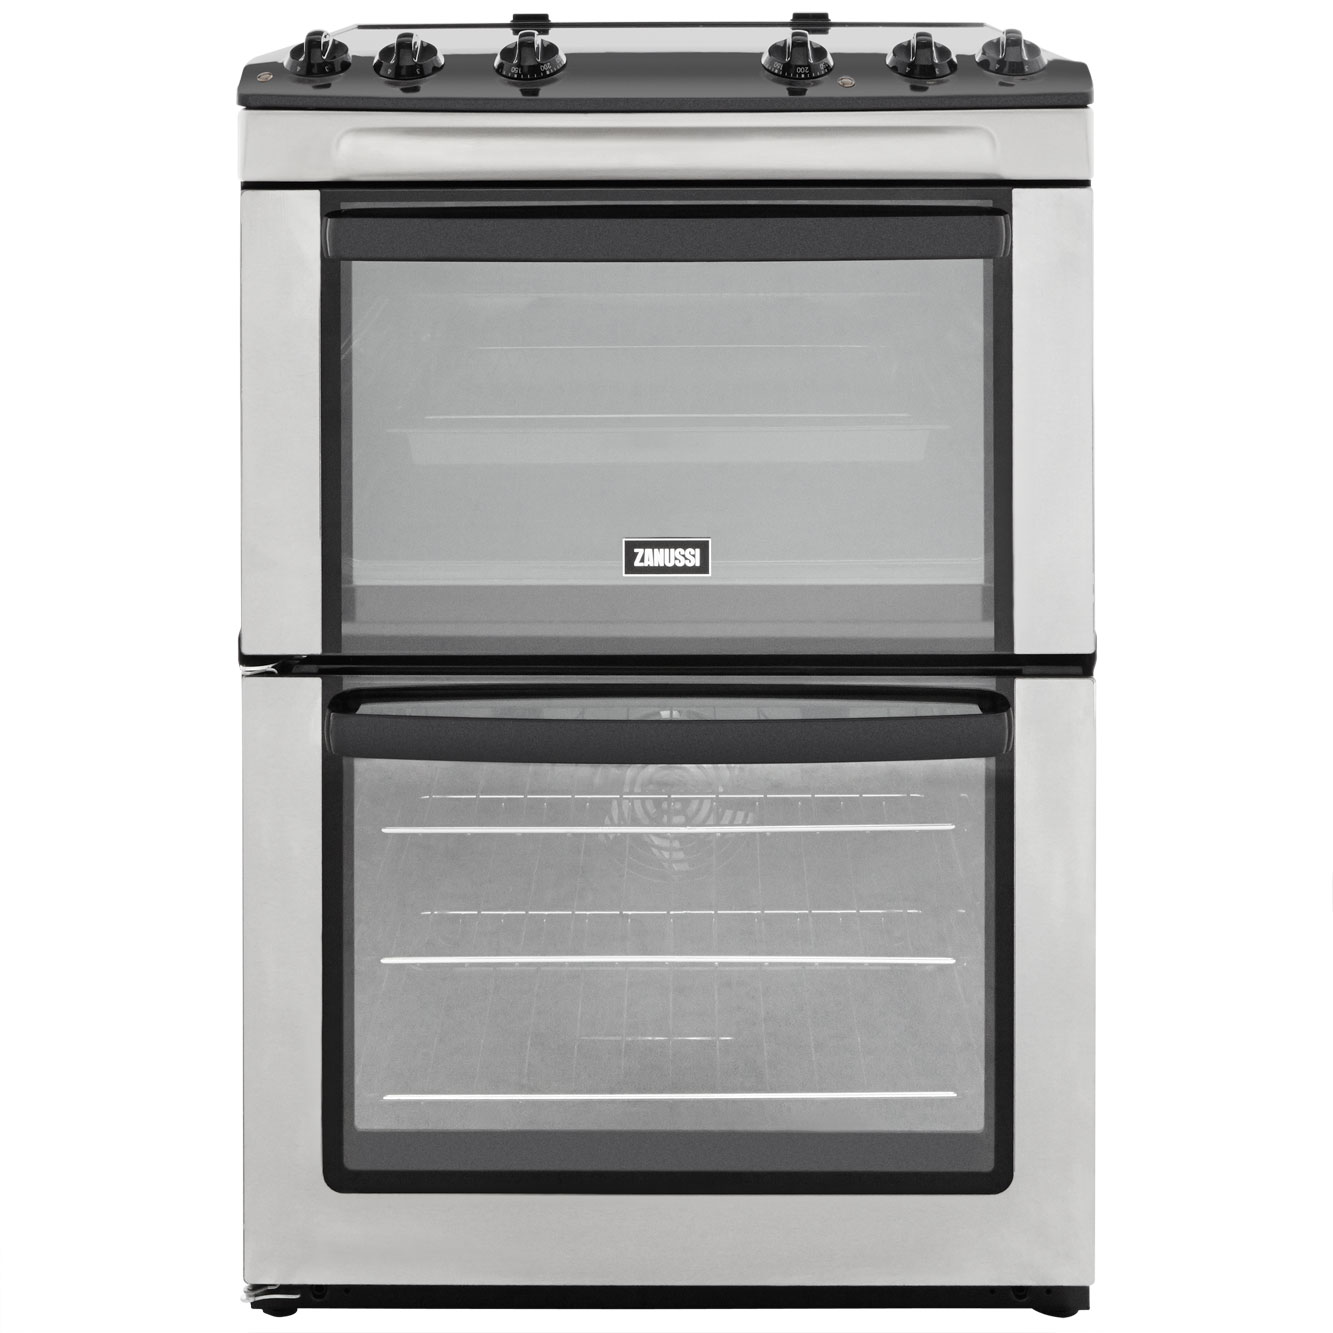 Zanussi ZCV661MX Electric Cooker with Ceramic Hob - Stainless Steel